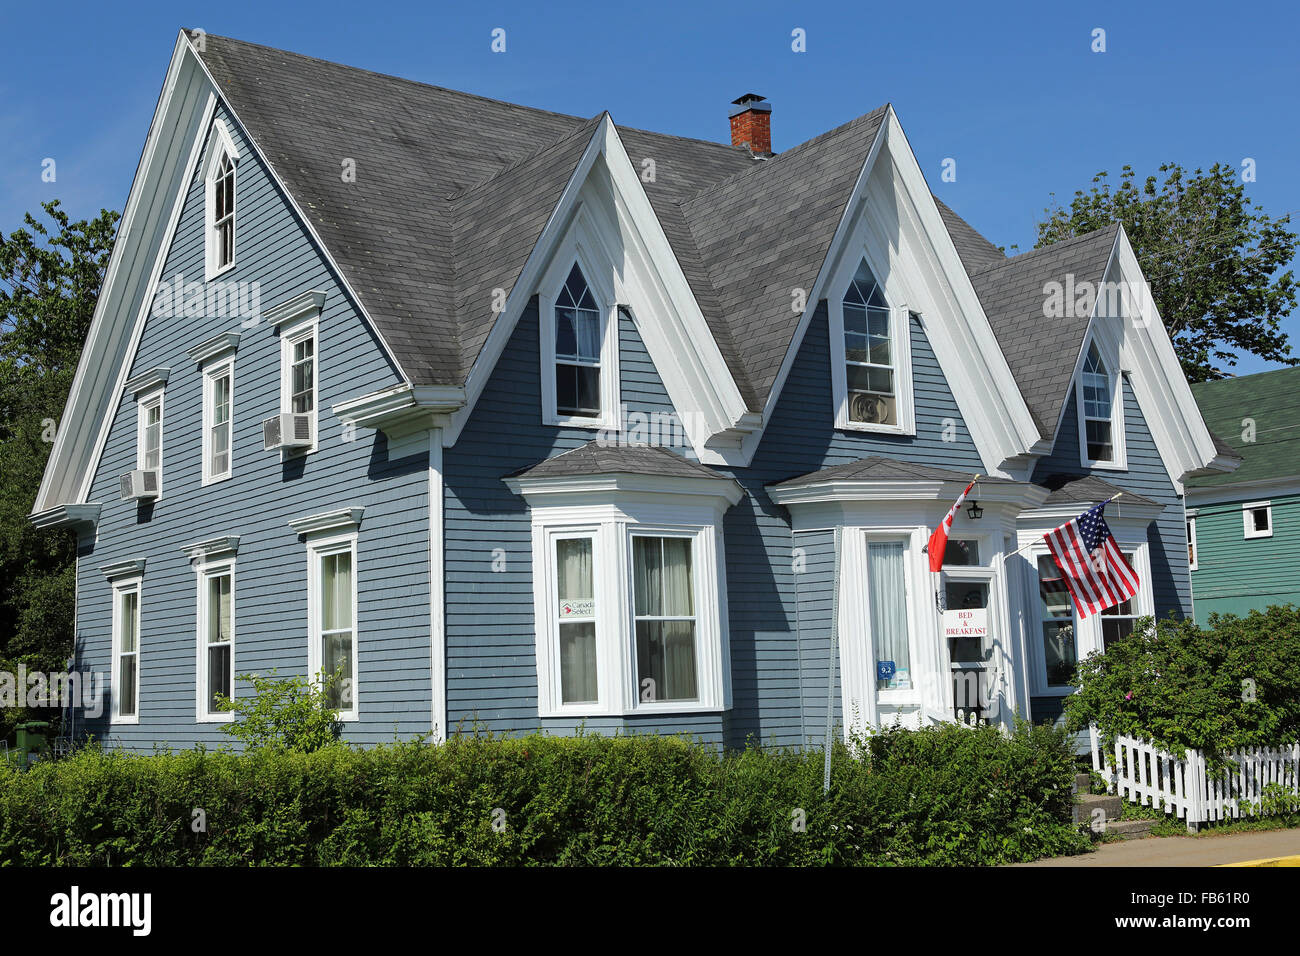 Amazing An American Flag Hangs Outside Of A Wooden House In Mahone Bay In Nova  Scotia, Canada. The Building Has A Painted Wooden Facade.